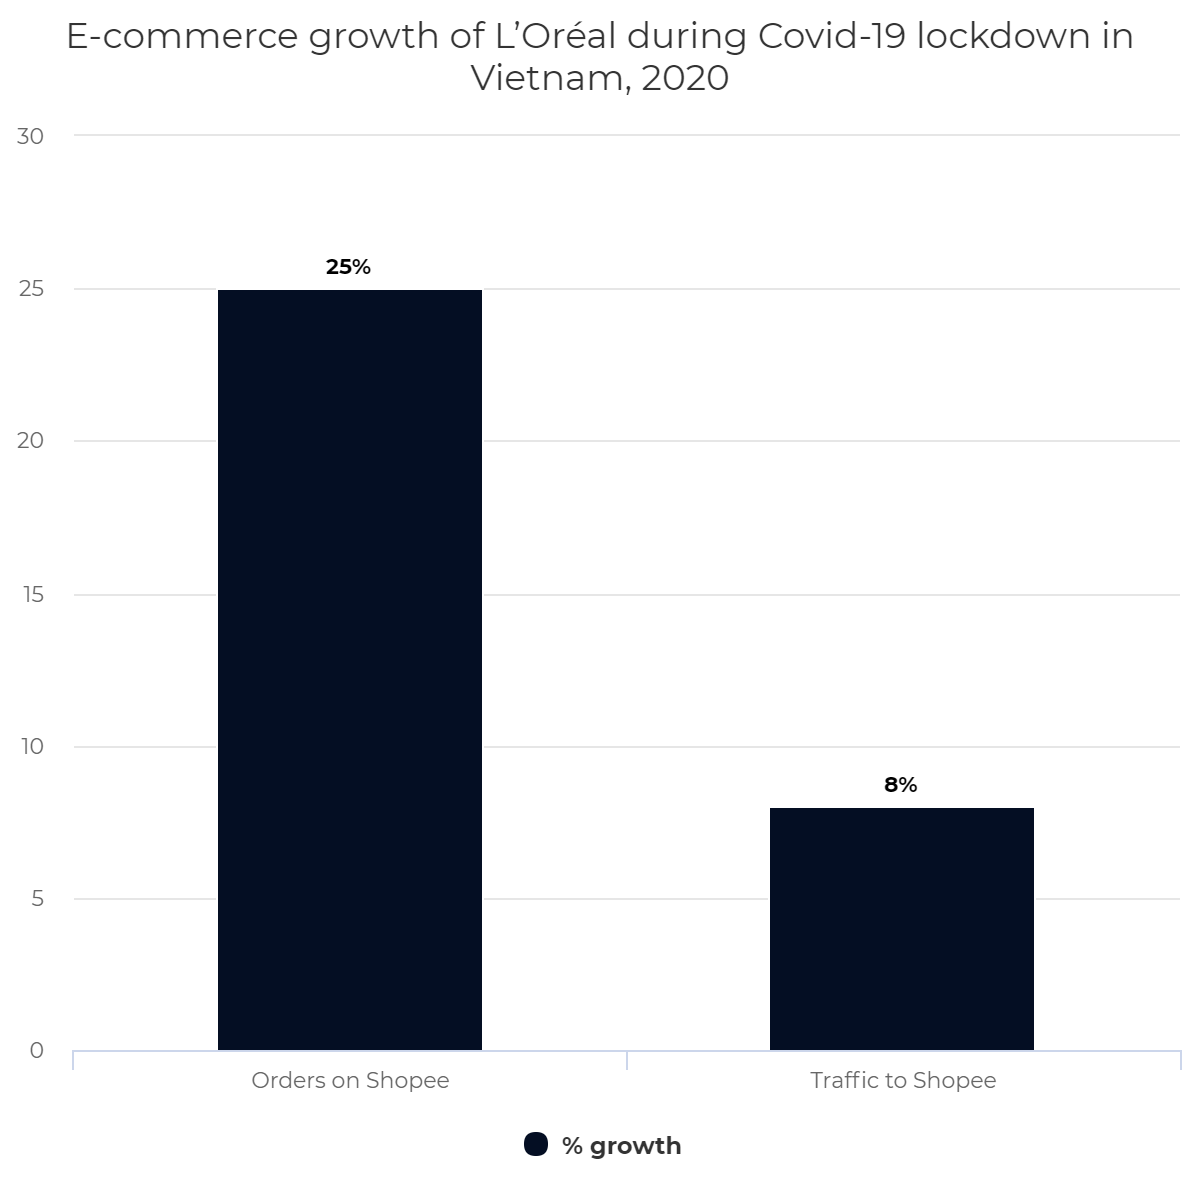 E-commerce growth of L'Oréal during Covid-19 lockdown in Vietnam, 2020